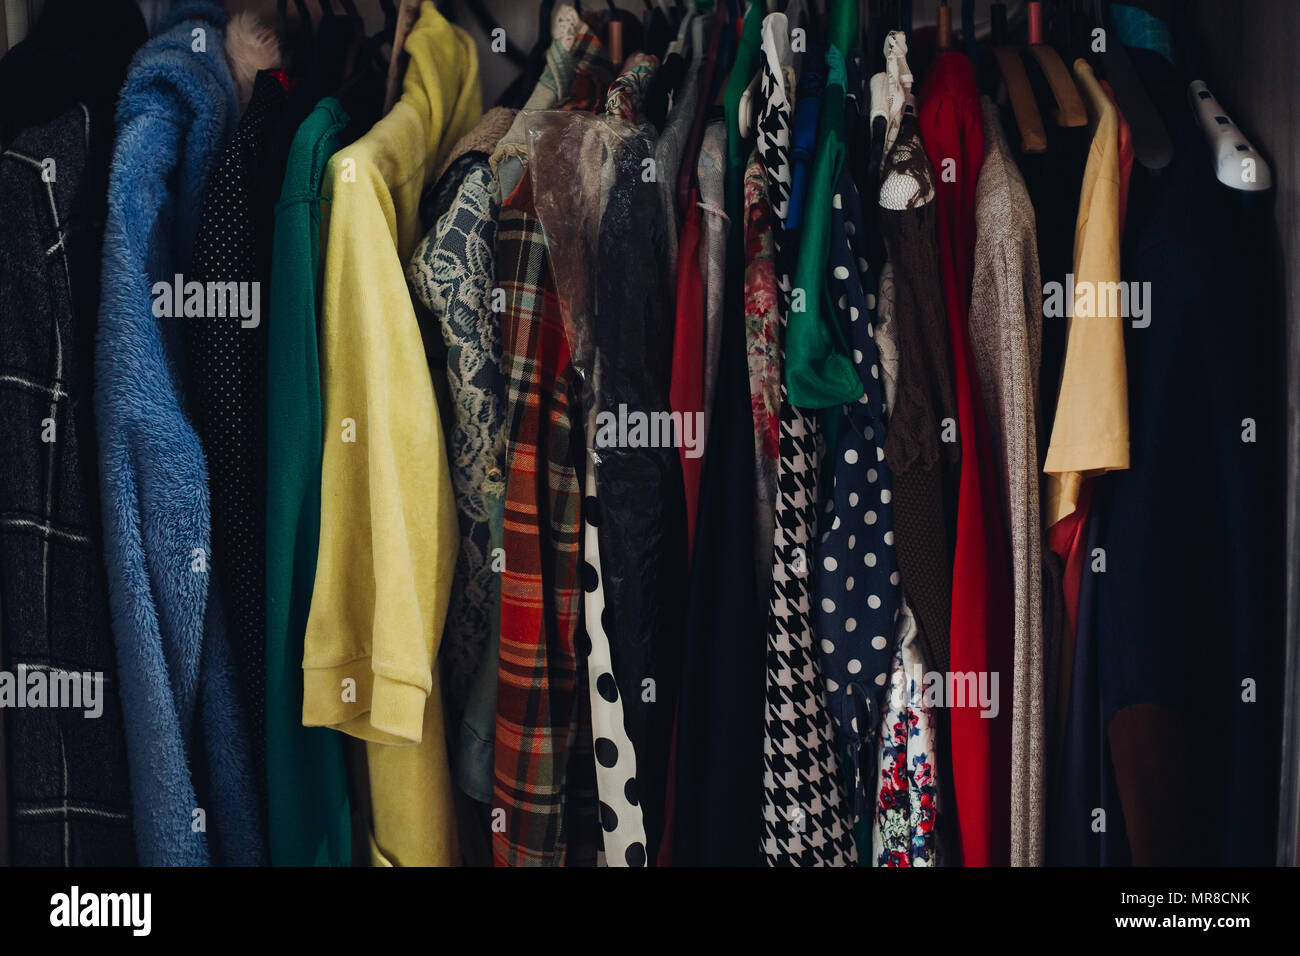 Luxury Clothing Shop Inside Stock Photos Luxury Clothing